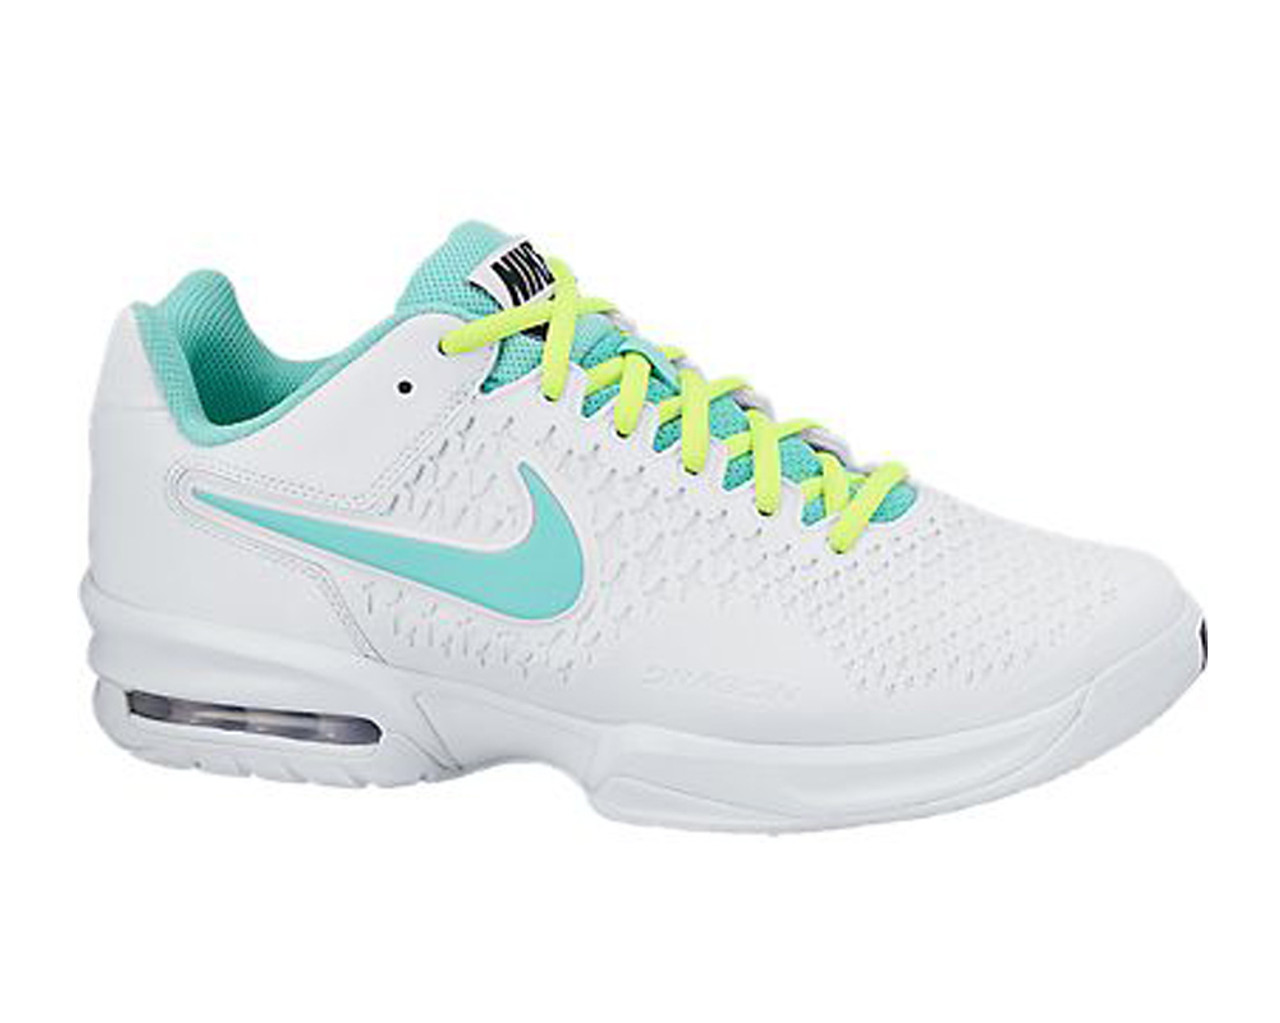 the latest a81f8 03275 Nike Women s Air Max Cage Tennis Shoes White Turquoise - Shop now   Shoolu.